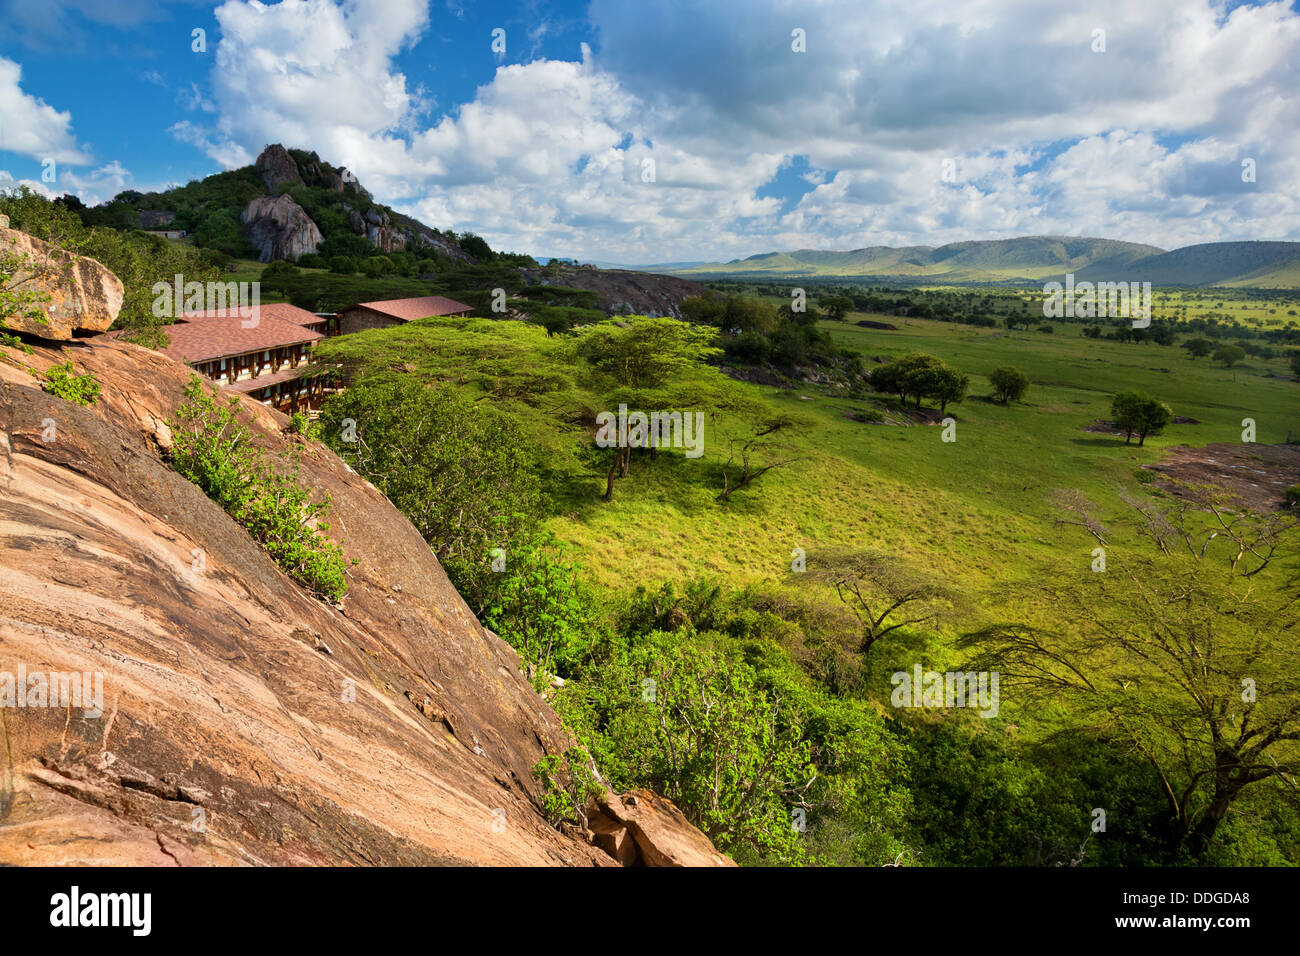 Savanna landscape and tourist lodge in the Serengeti National Park, Tanzania, Africa. - Stock Image